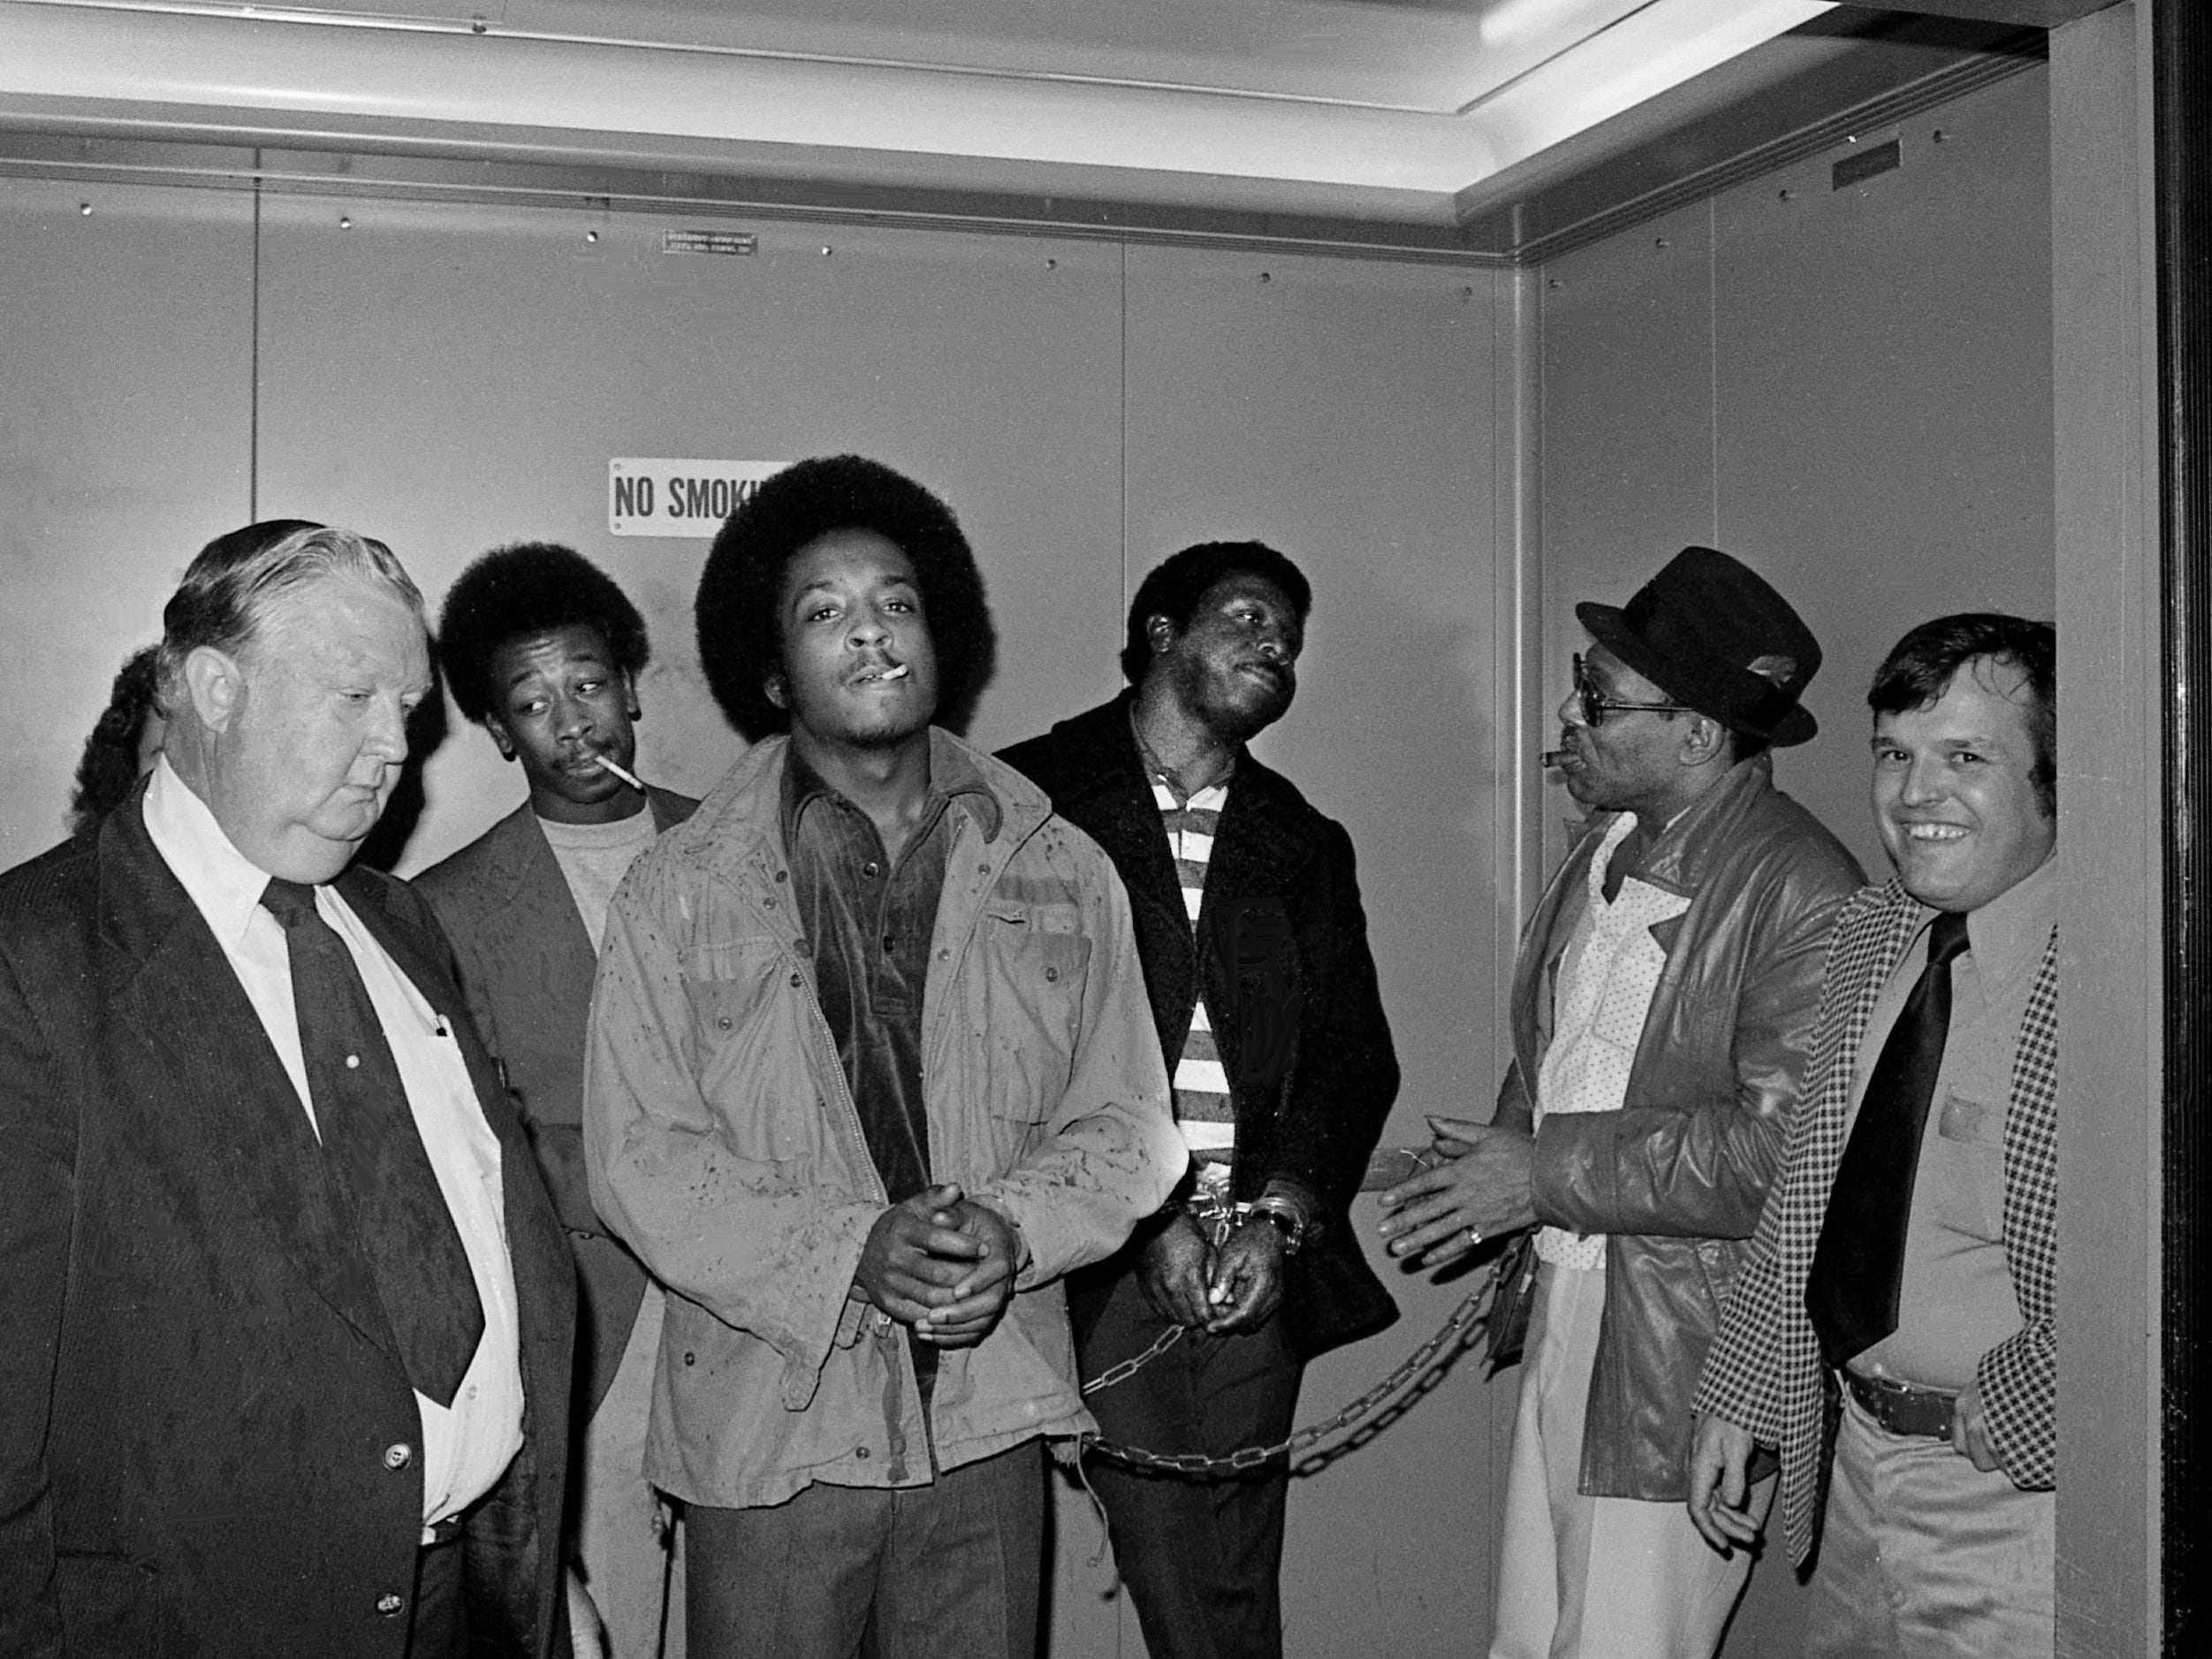 U.S. Marshal Charles Throgmorton, left, Correctional Rehabilitation Center inmates Roland Harris, Calvin Brown, John Henry Gant and Ike Franklin and U.S. Marshal Larry Cravens board an elevator in the federal courthouse Feb. 23, 1979. The inmates were testifying before the grand jury investigating the pardons and parole practice of former Gov. Ray Blanton's administration.